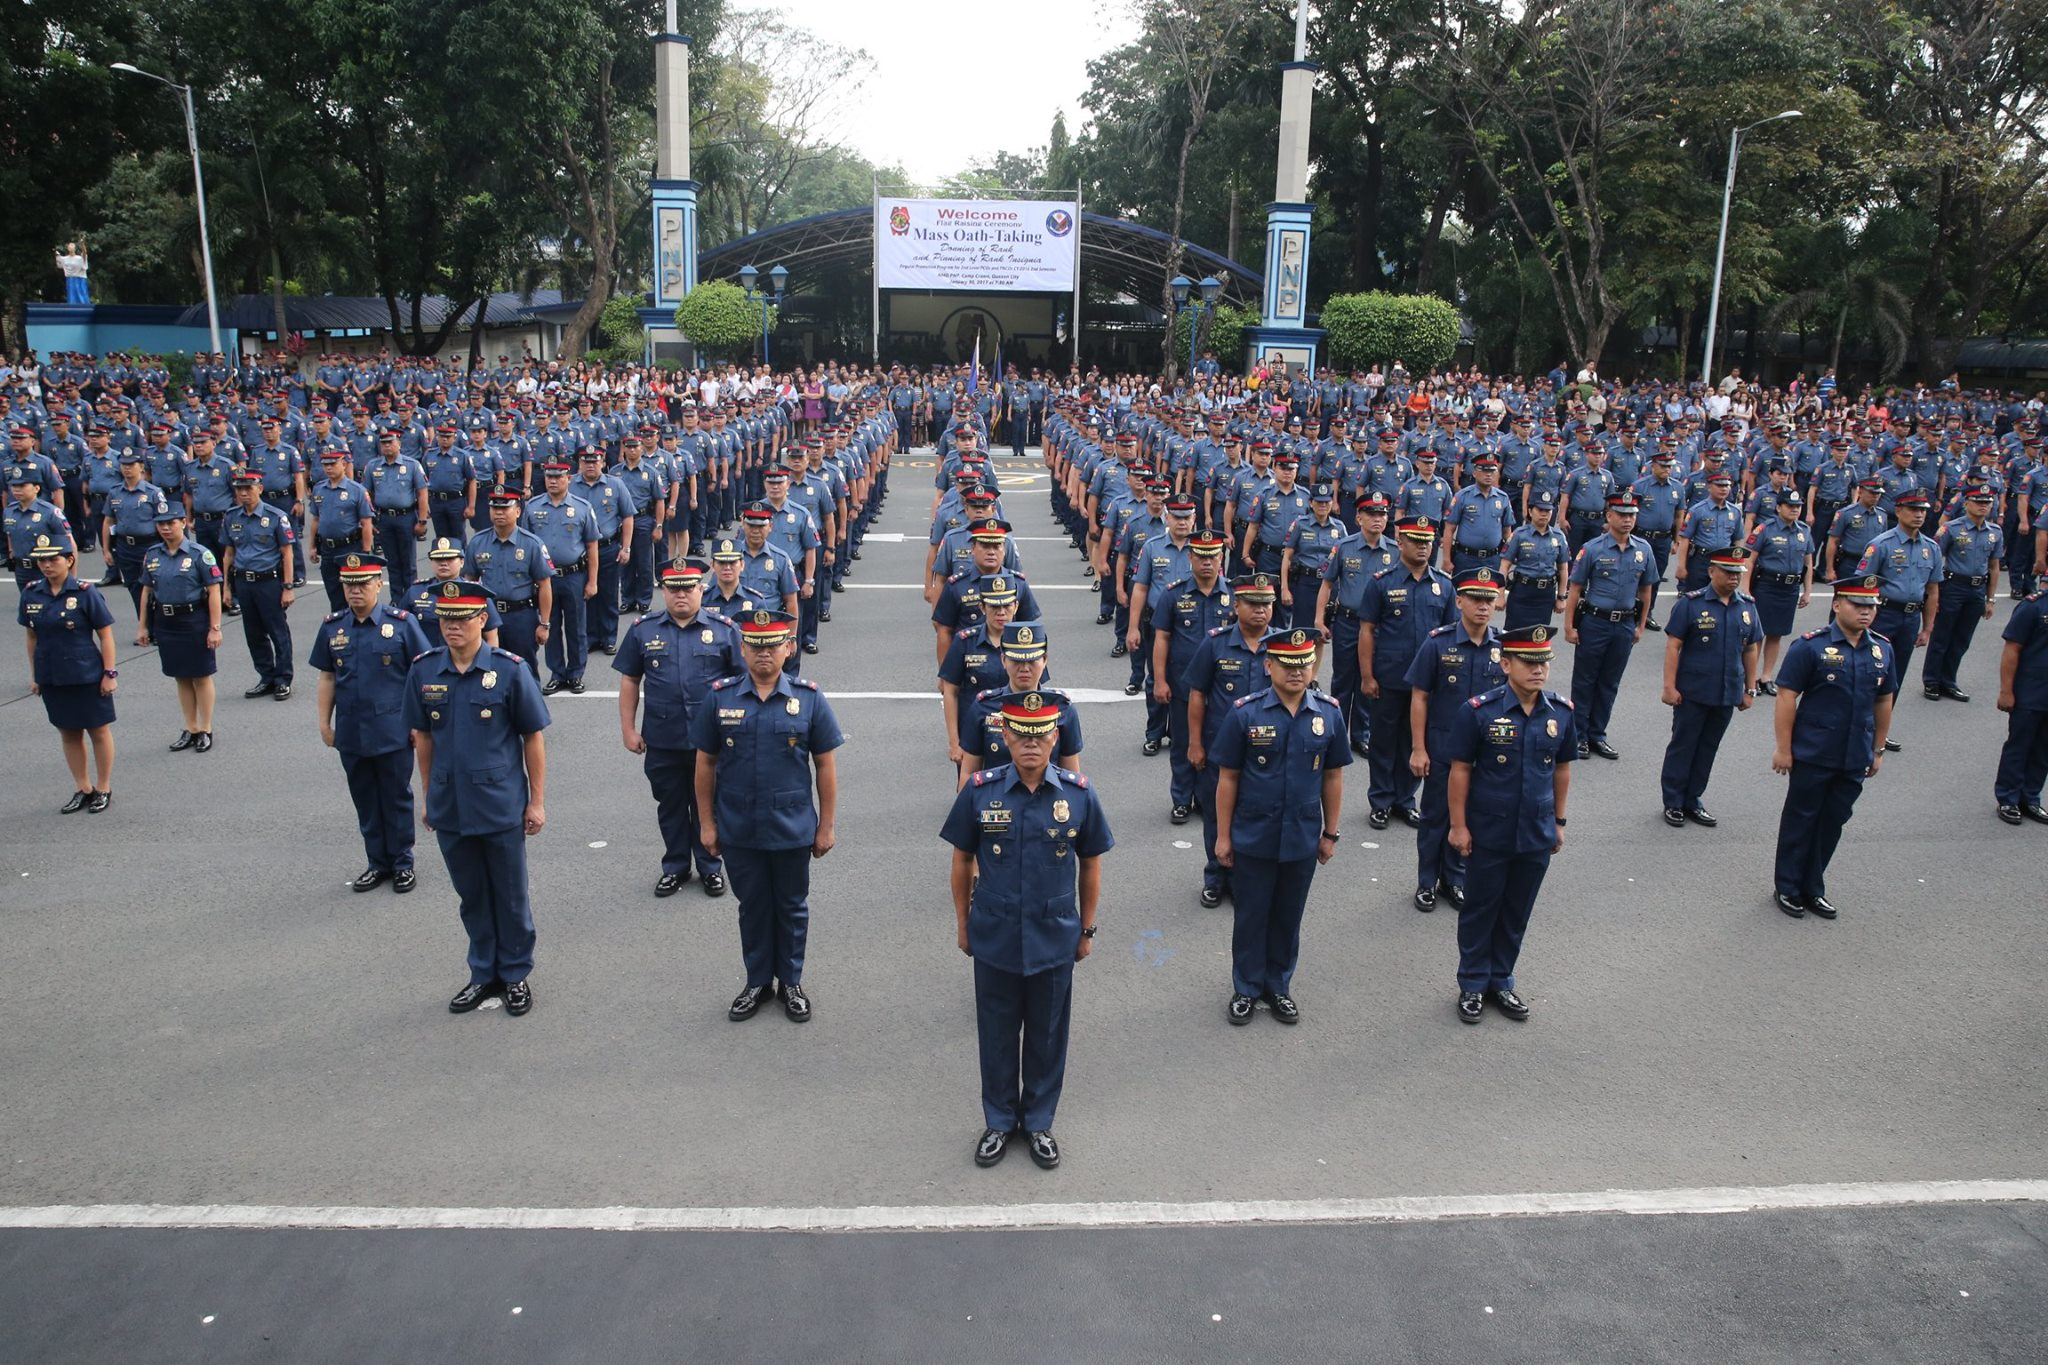 The National Police Commission (Napolcom) has raised the combat duty pay and combat incentive pay of Philippine National Police uniformed personnel involved in actual police operations. (Photo: Philippine National Police/Facebook)